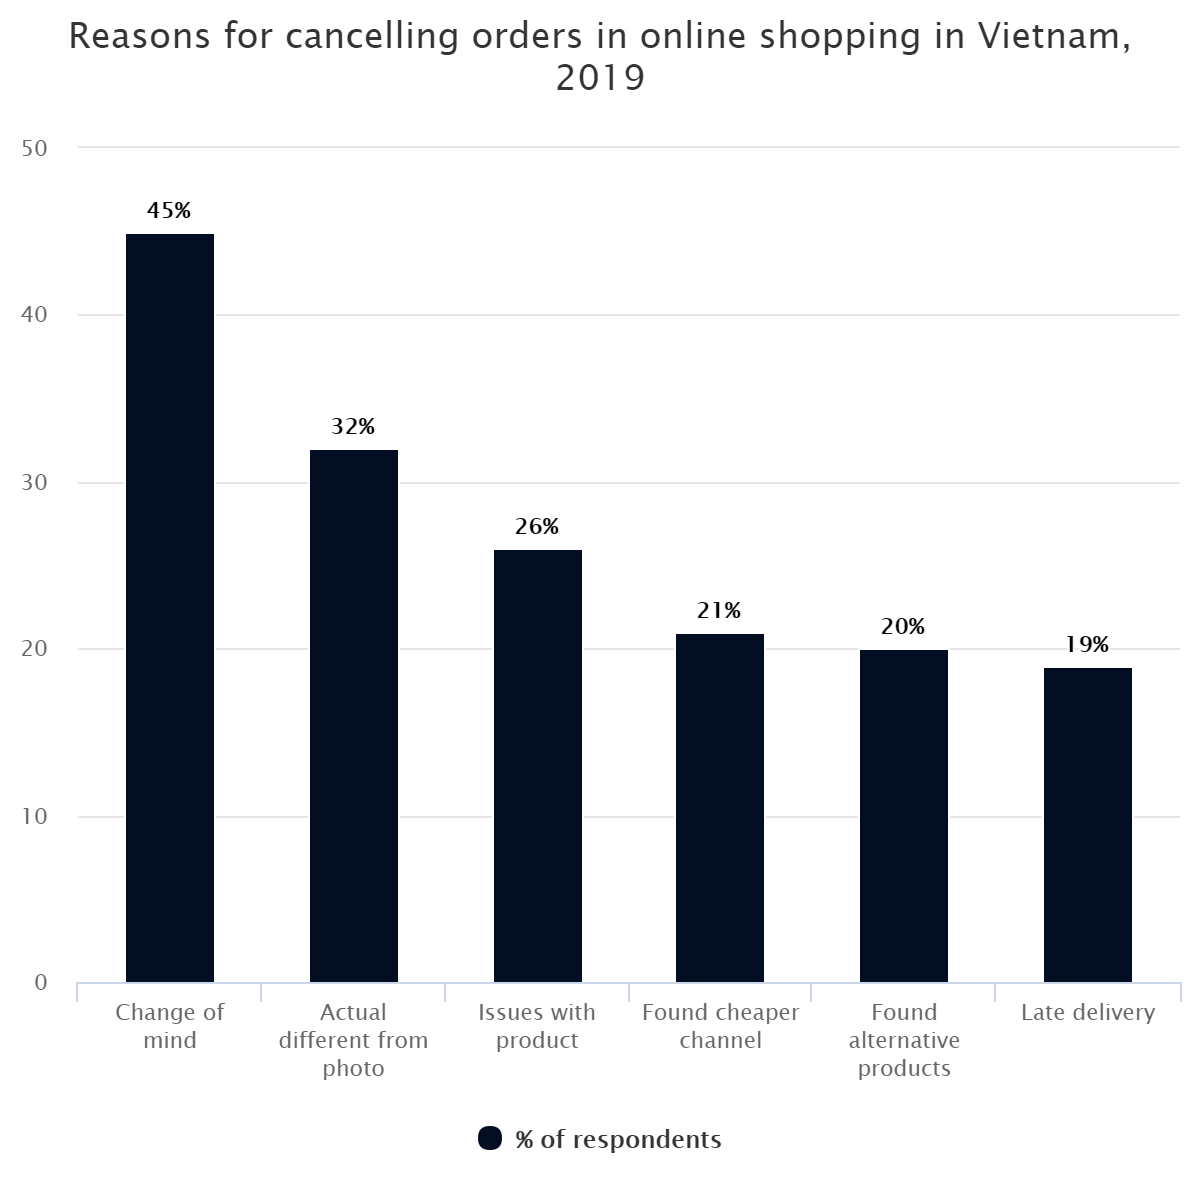 Reasons for cancelling orders in online shopping in Vietnam, 2019